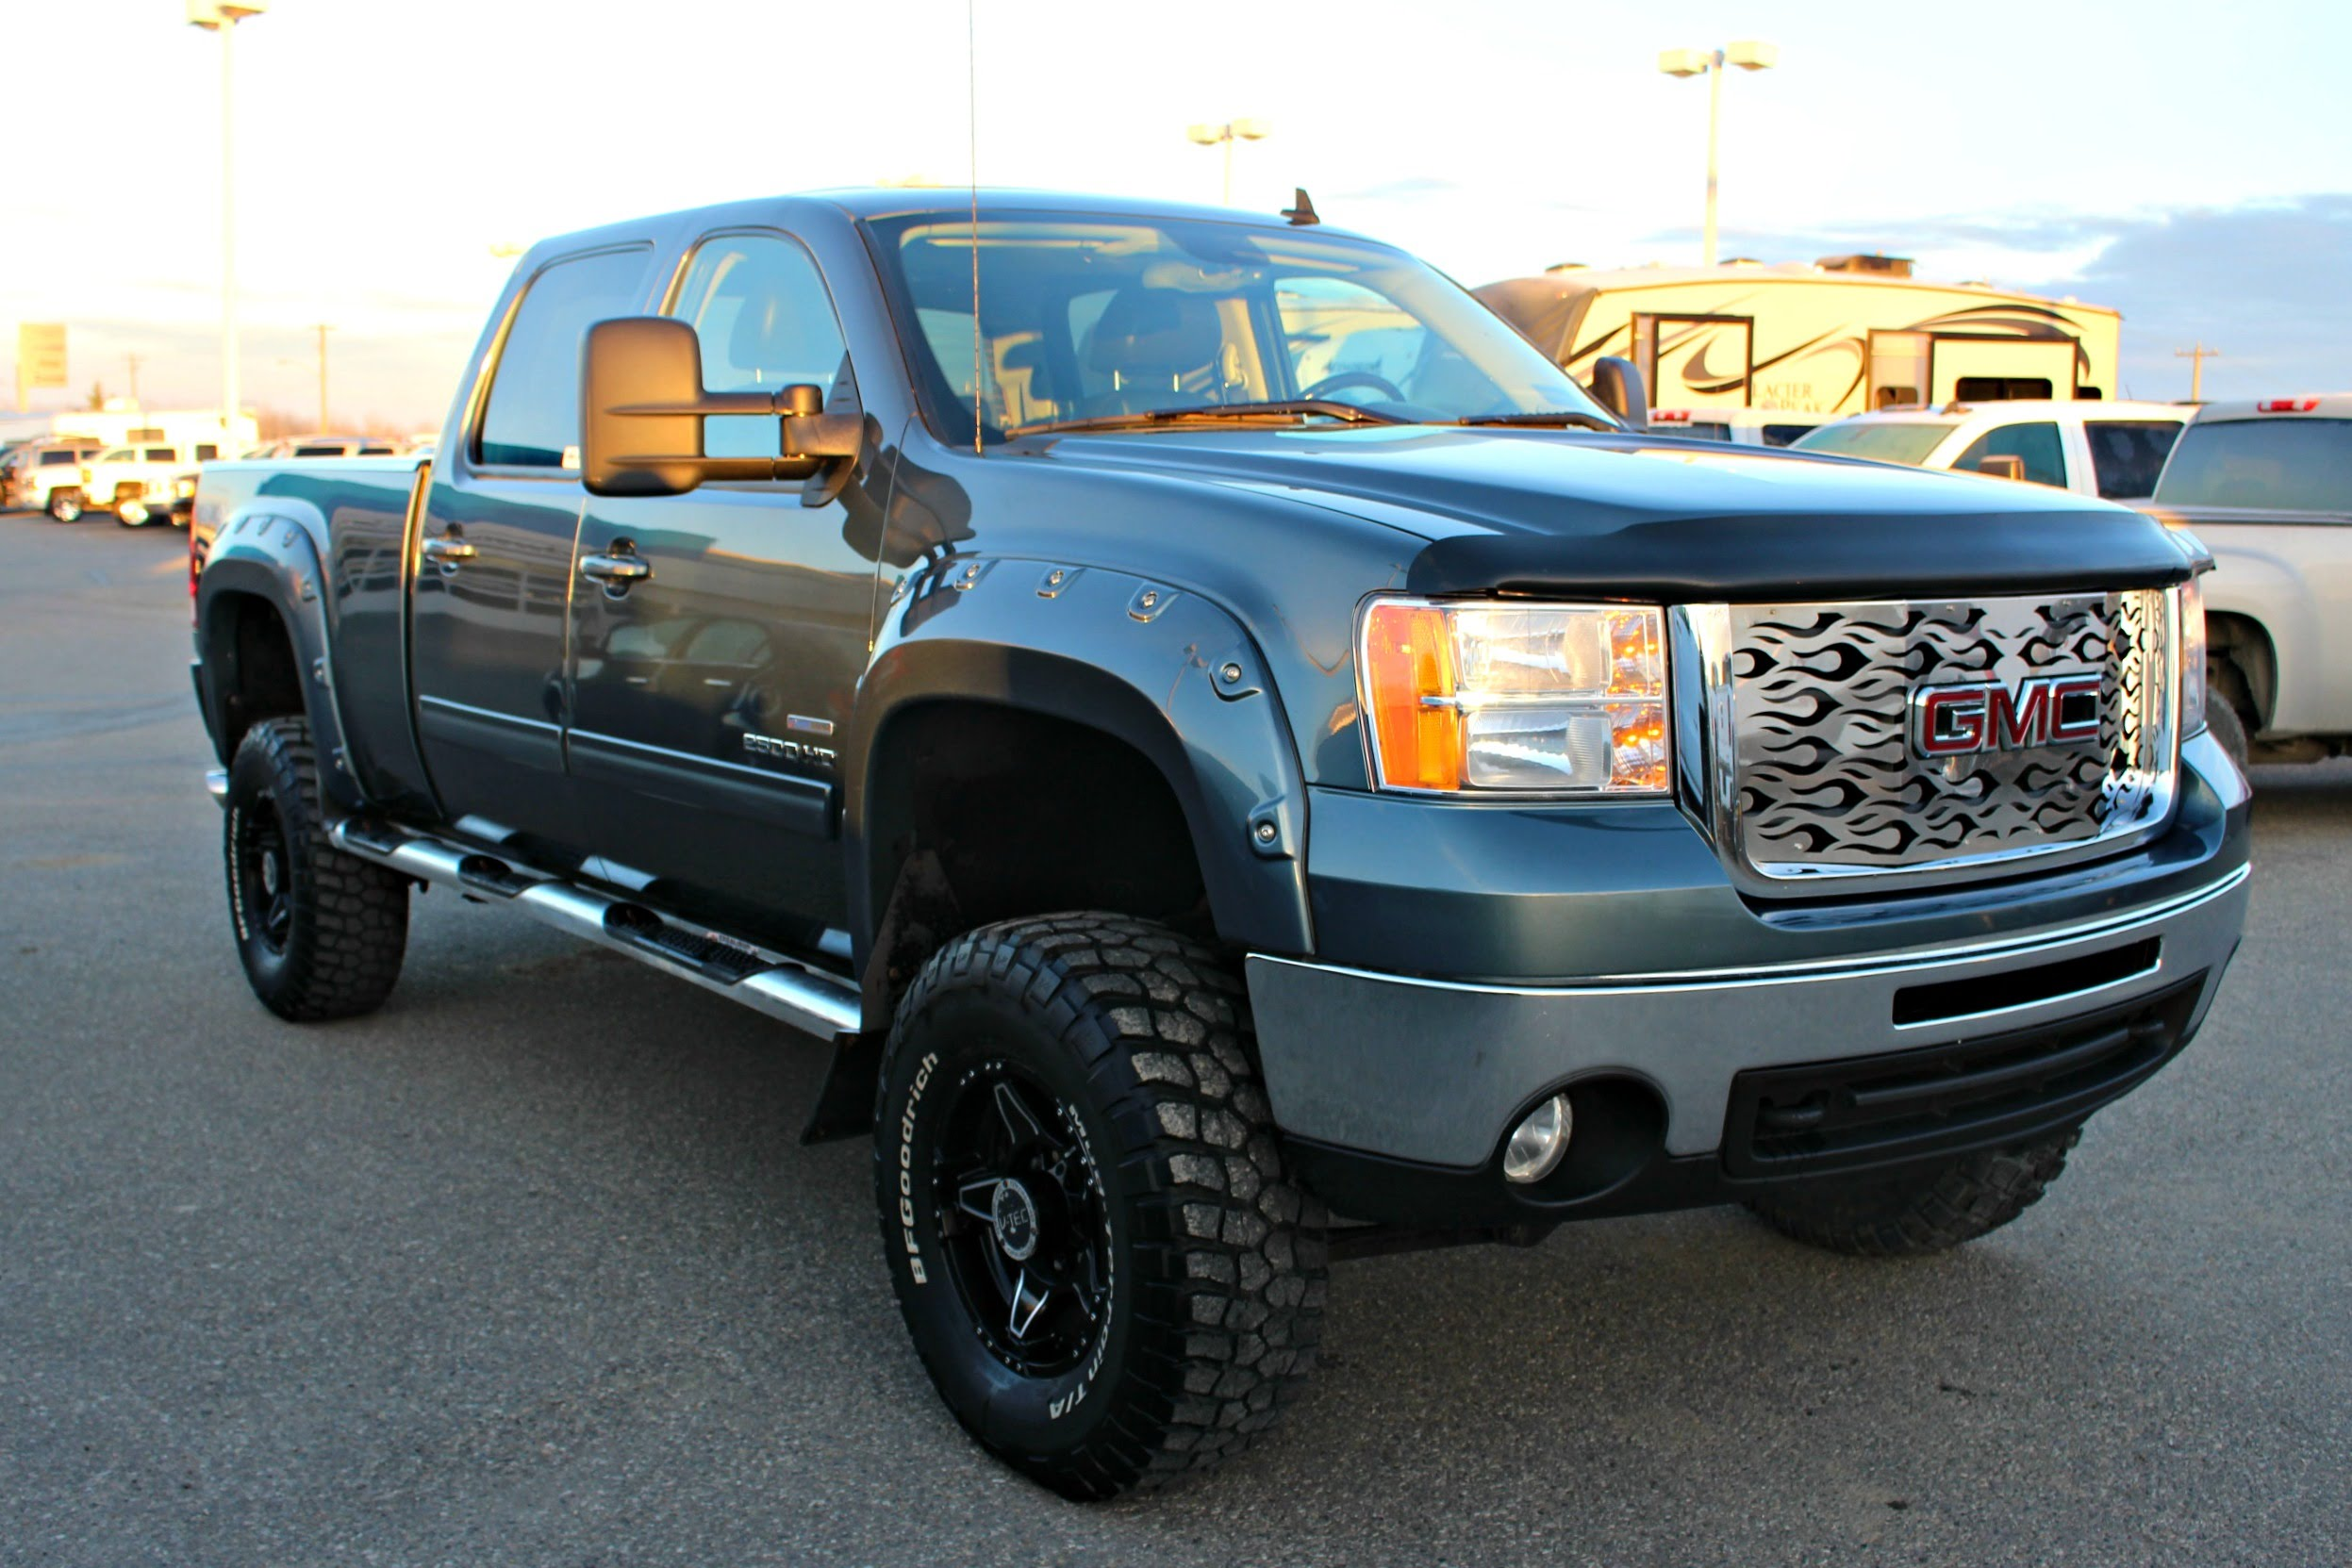 2010 GMC Sierra 2500hd #15